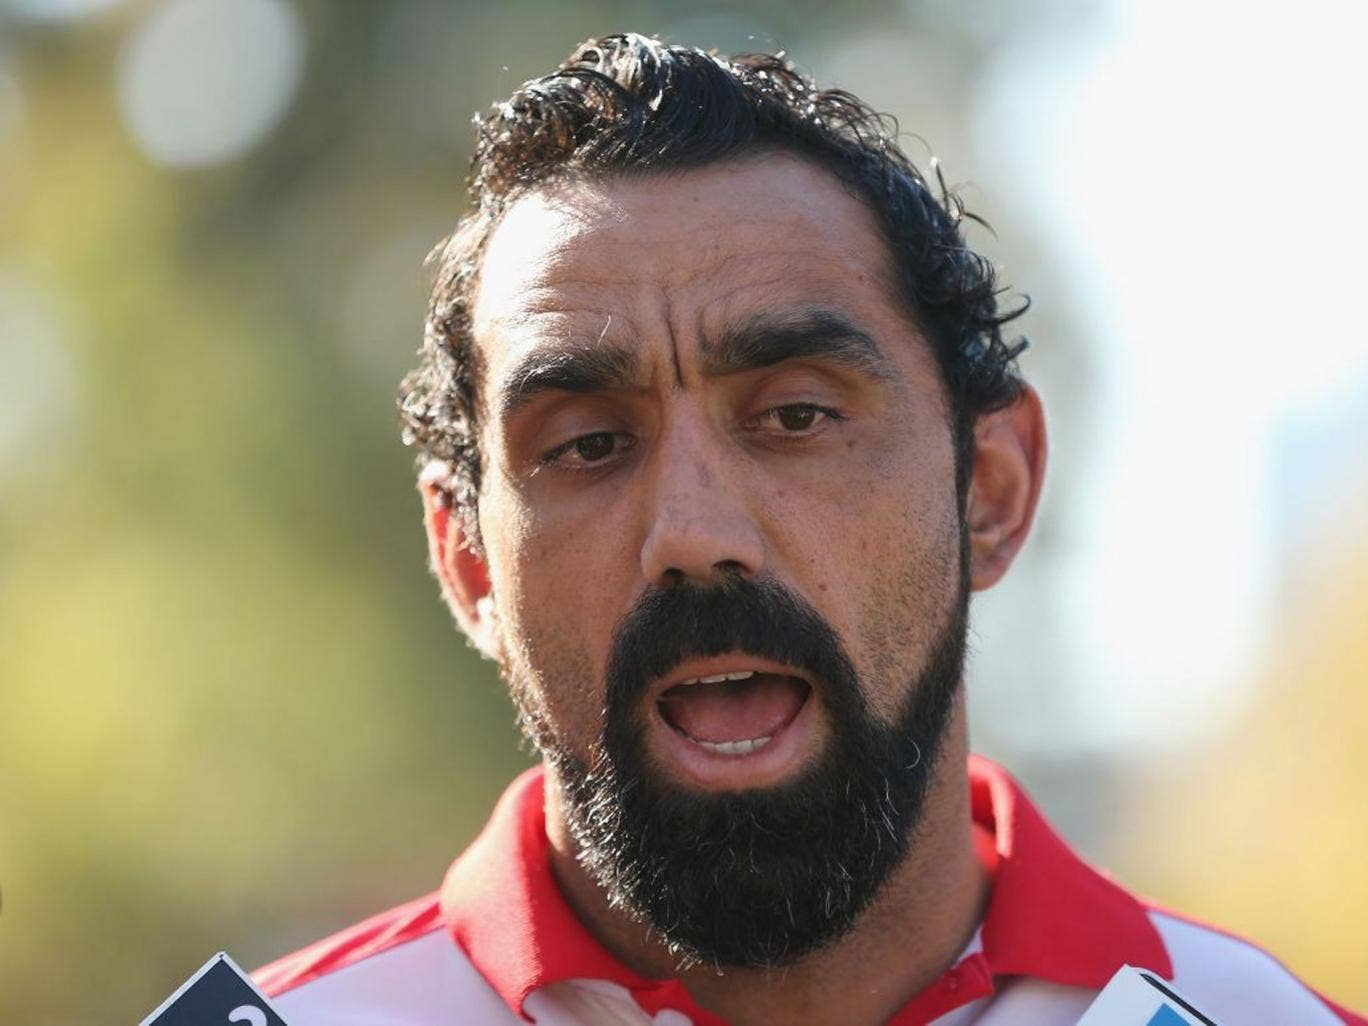 The girl has since apologised for the comment and Goodes, one of the country's top sportsmen, has urged support for the young fan.